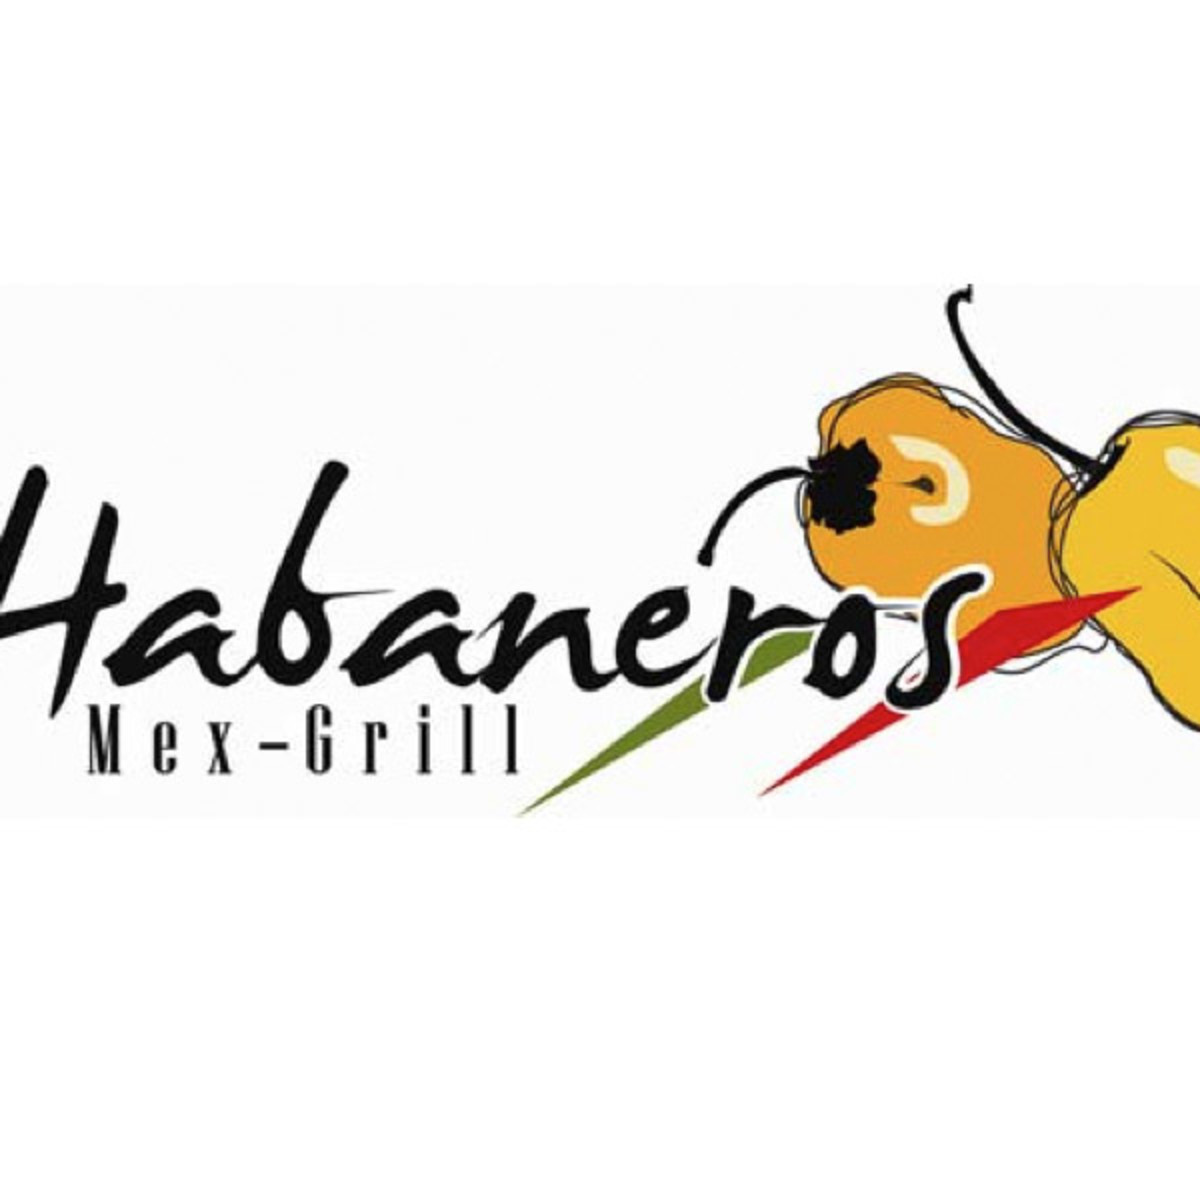 News_Restaurant Roundup_March 2010_Habaneros Mex-Grill_logo_THIS